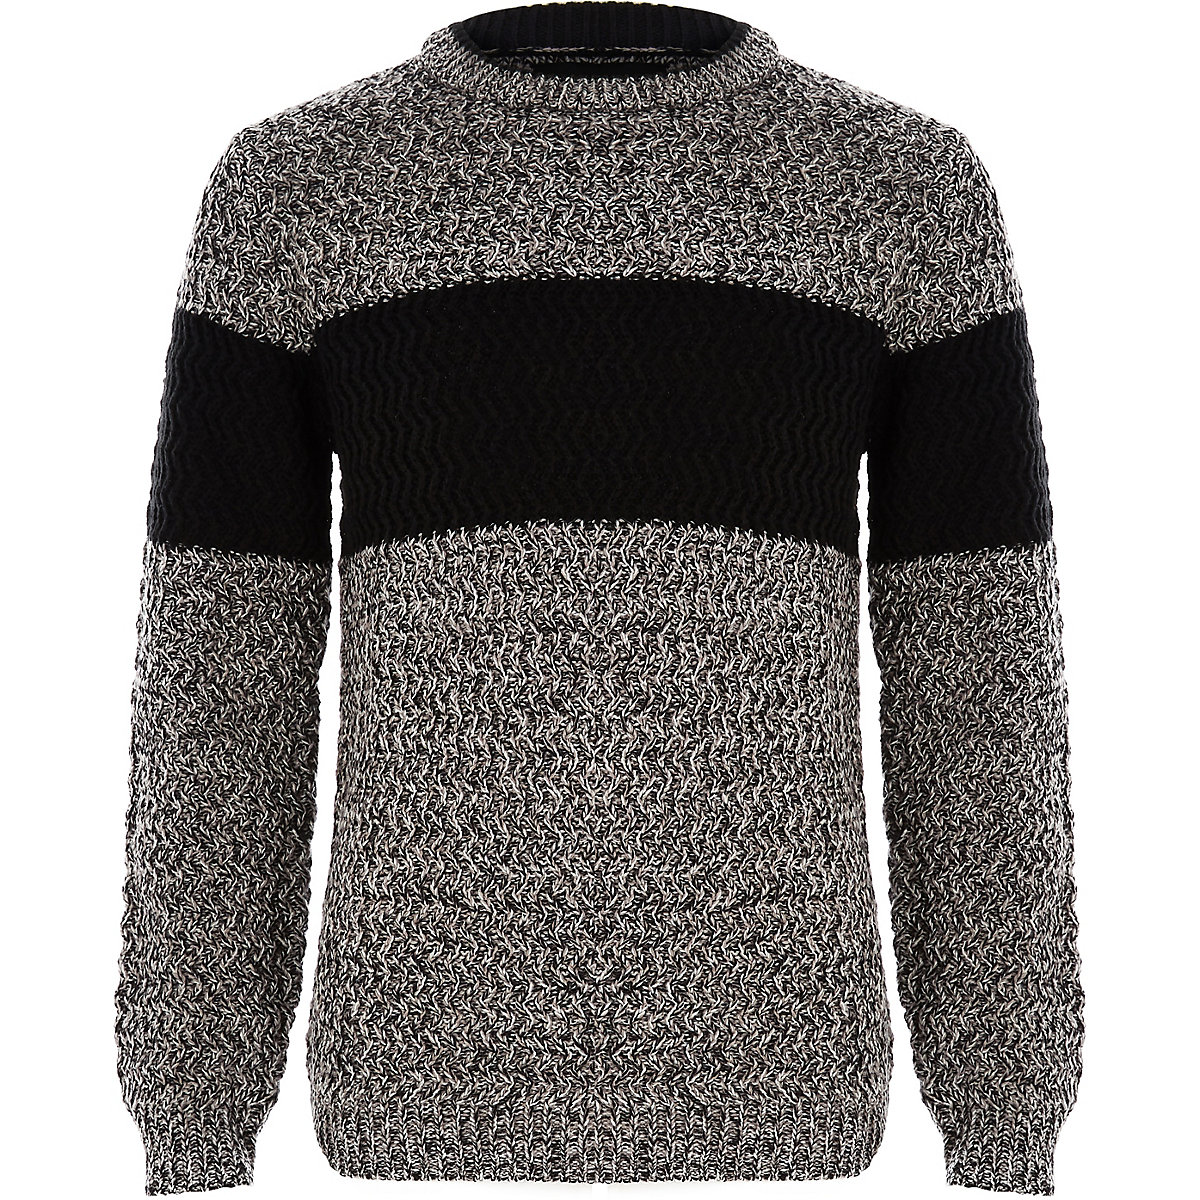 Boys grey block color sweater